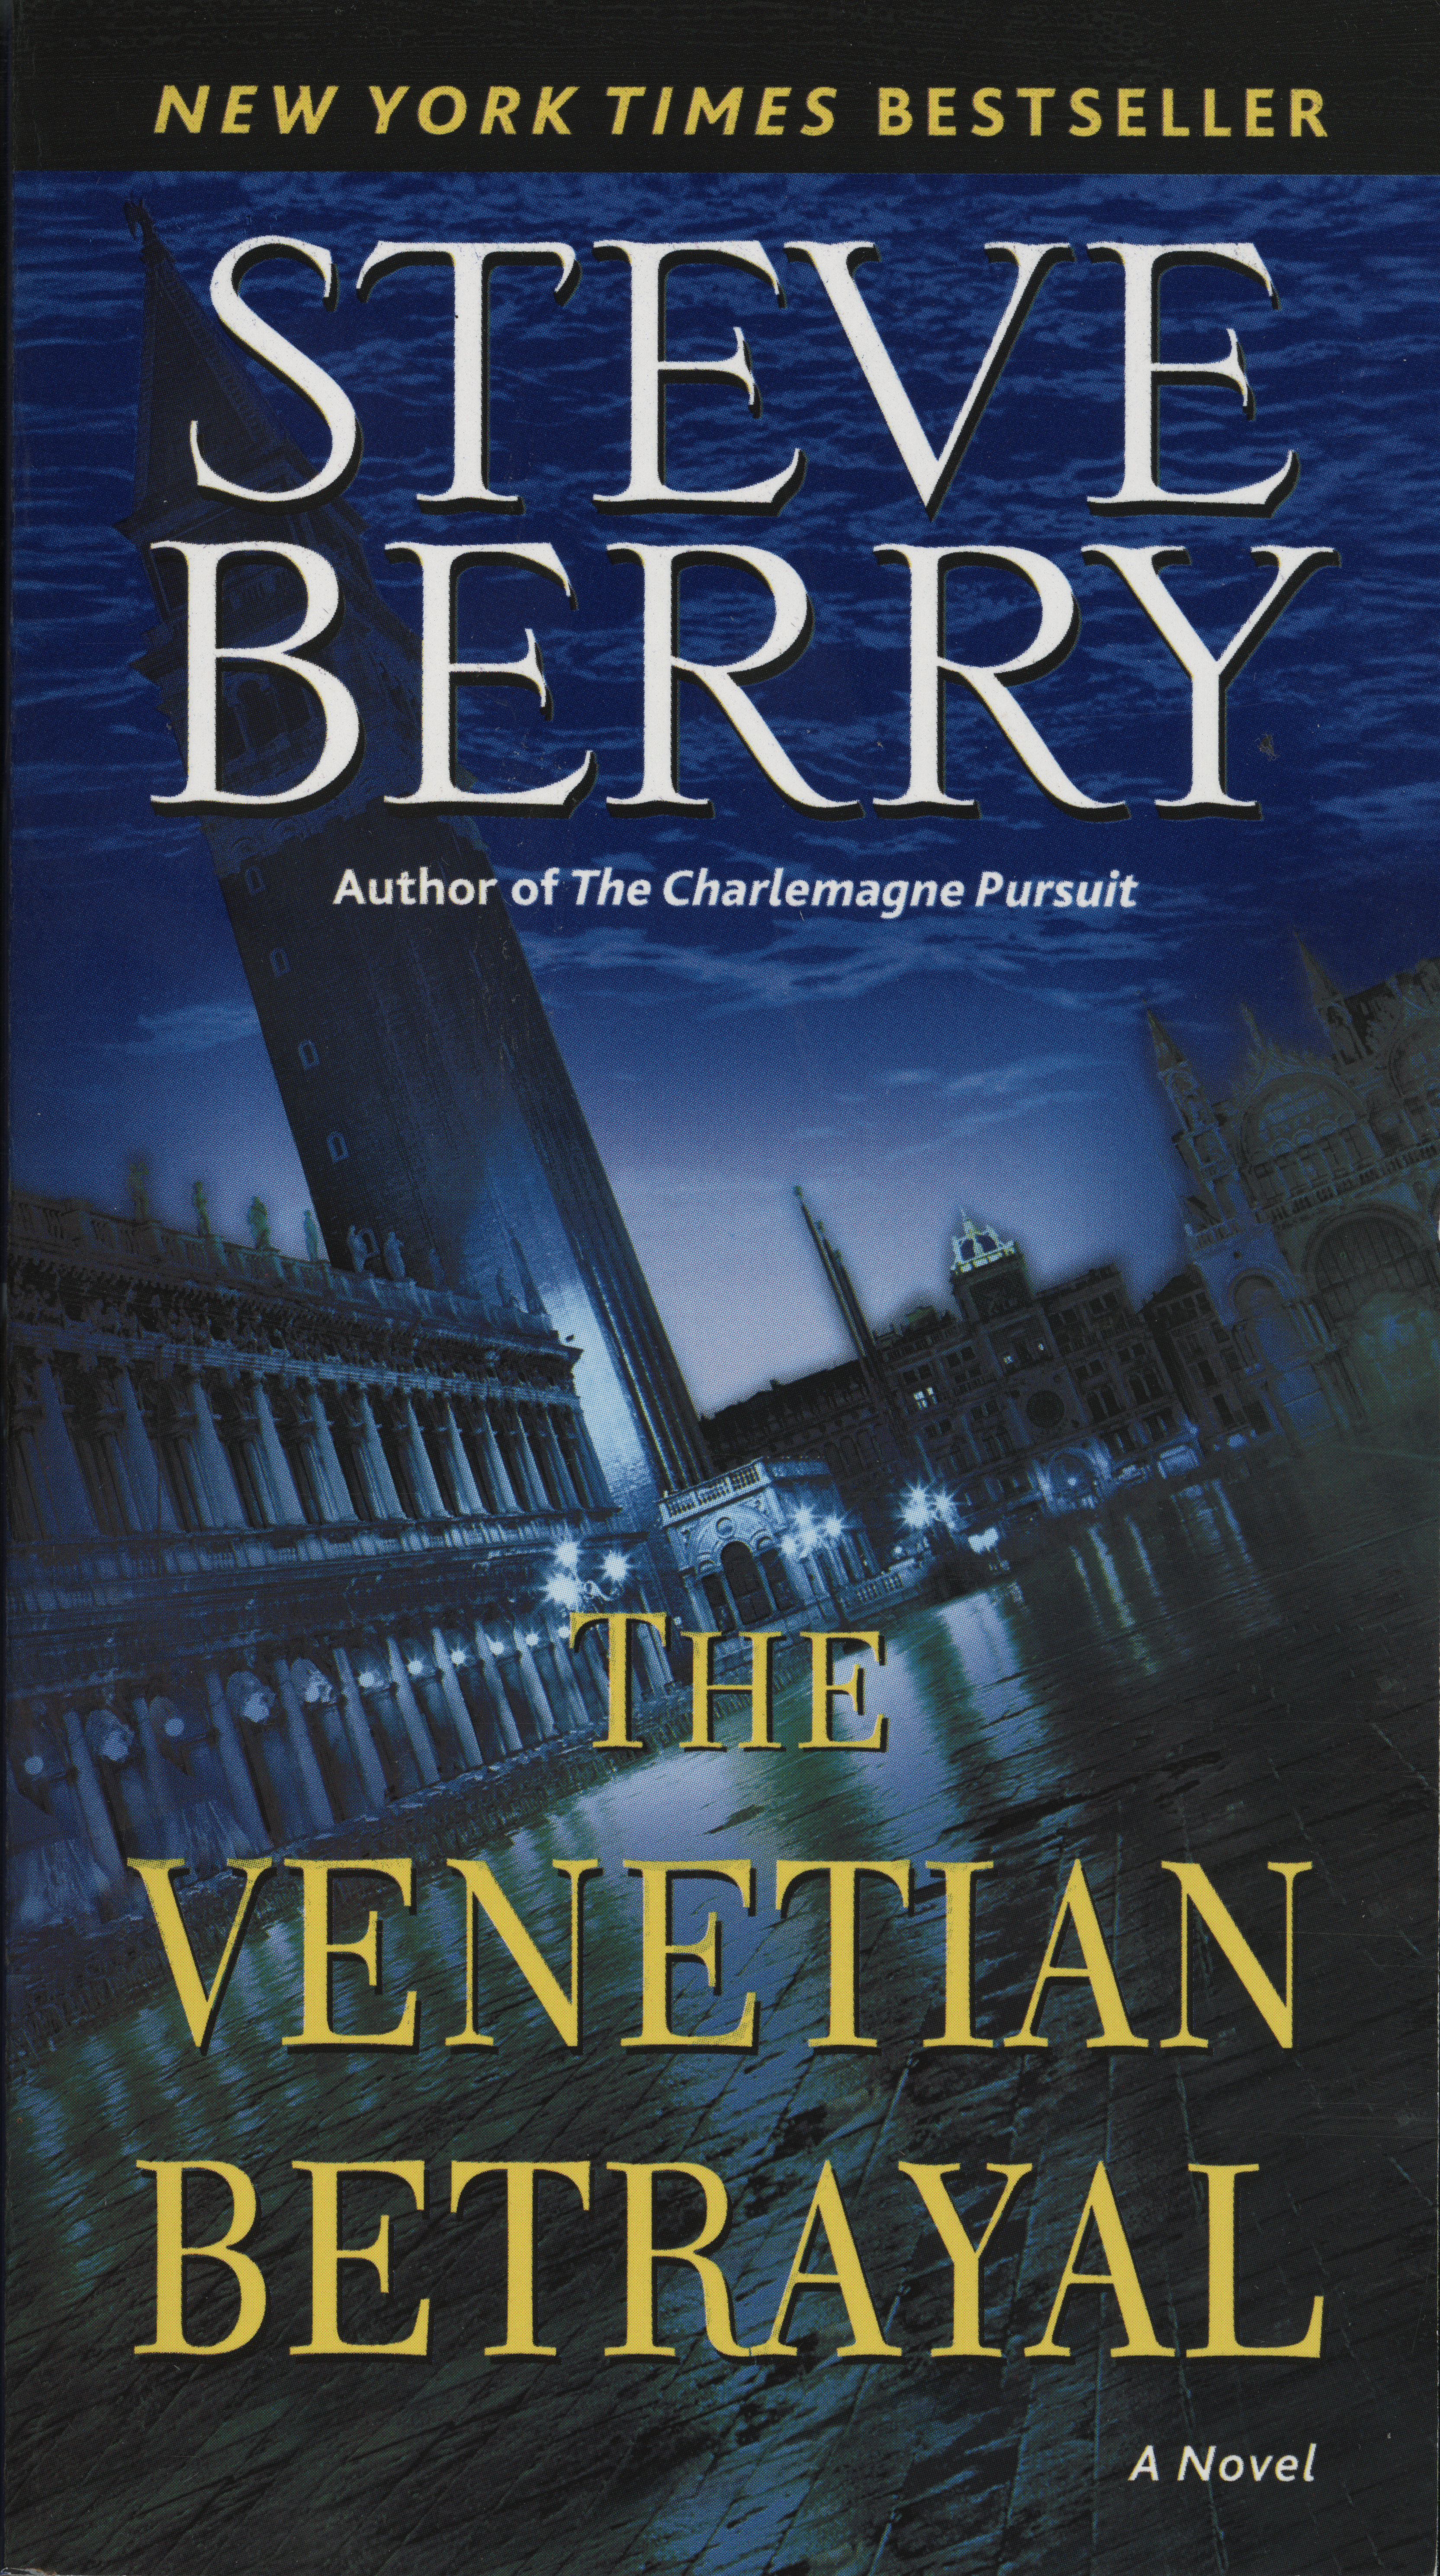 Cover image for The Venetian Betrayal [electronic resource] : A Novel